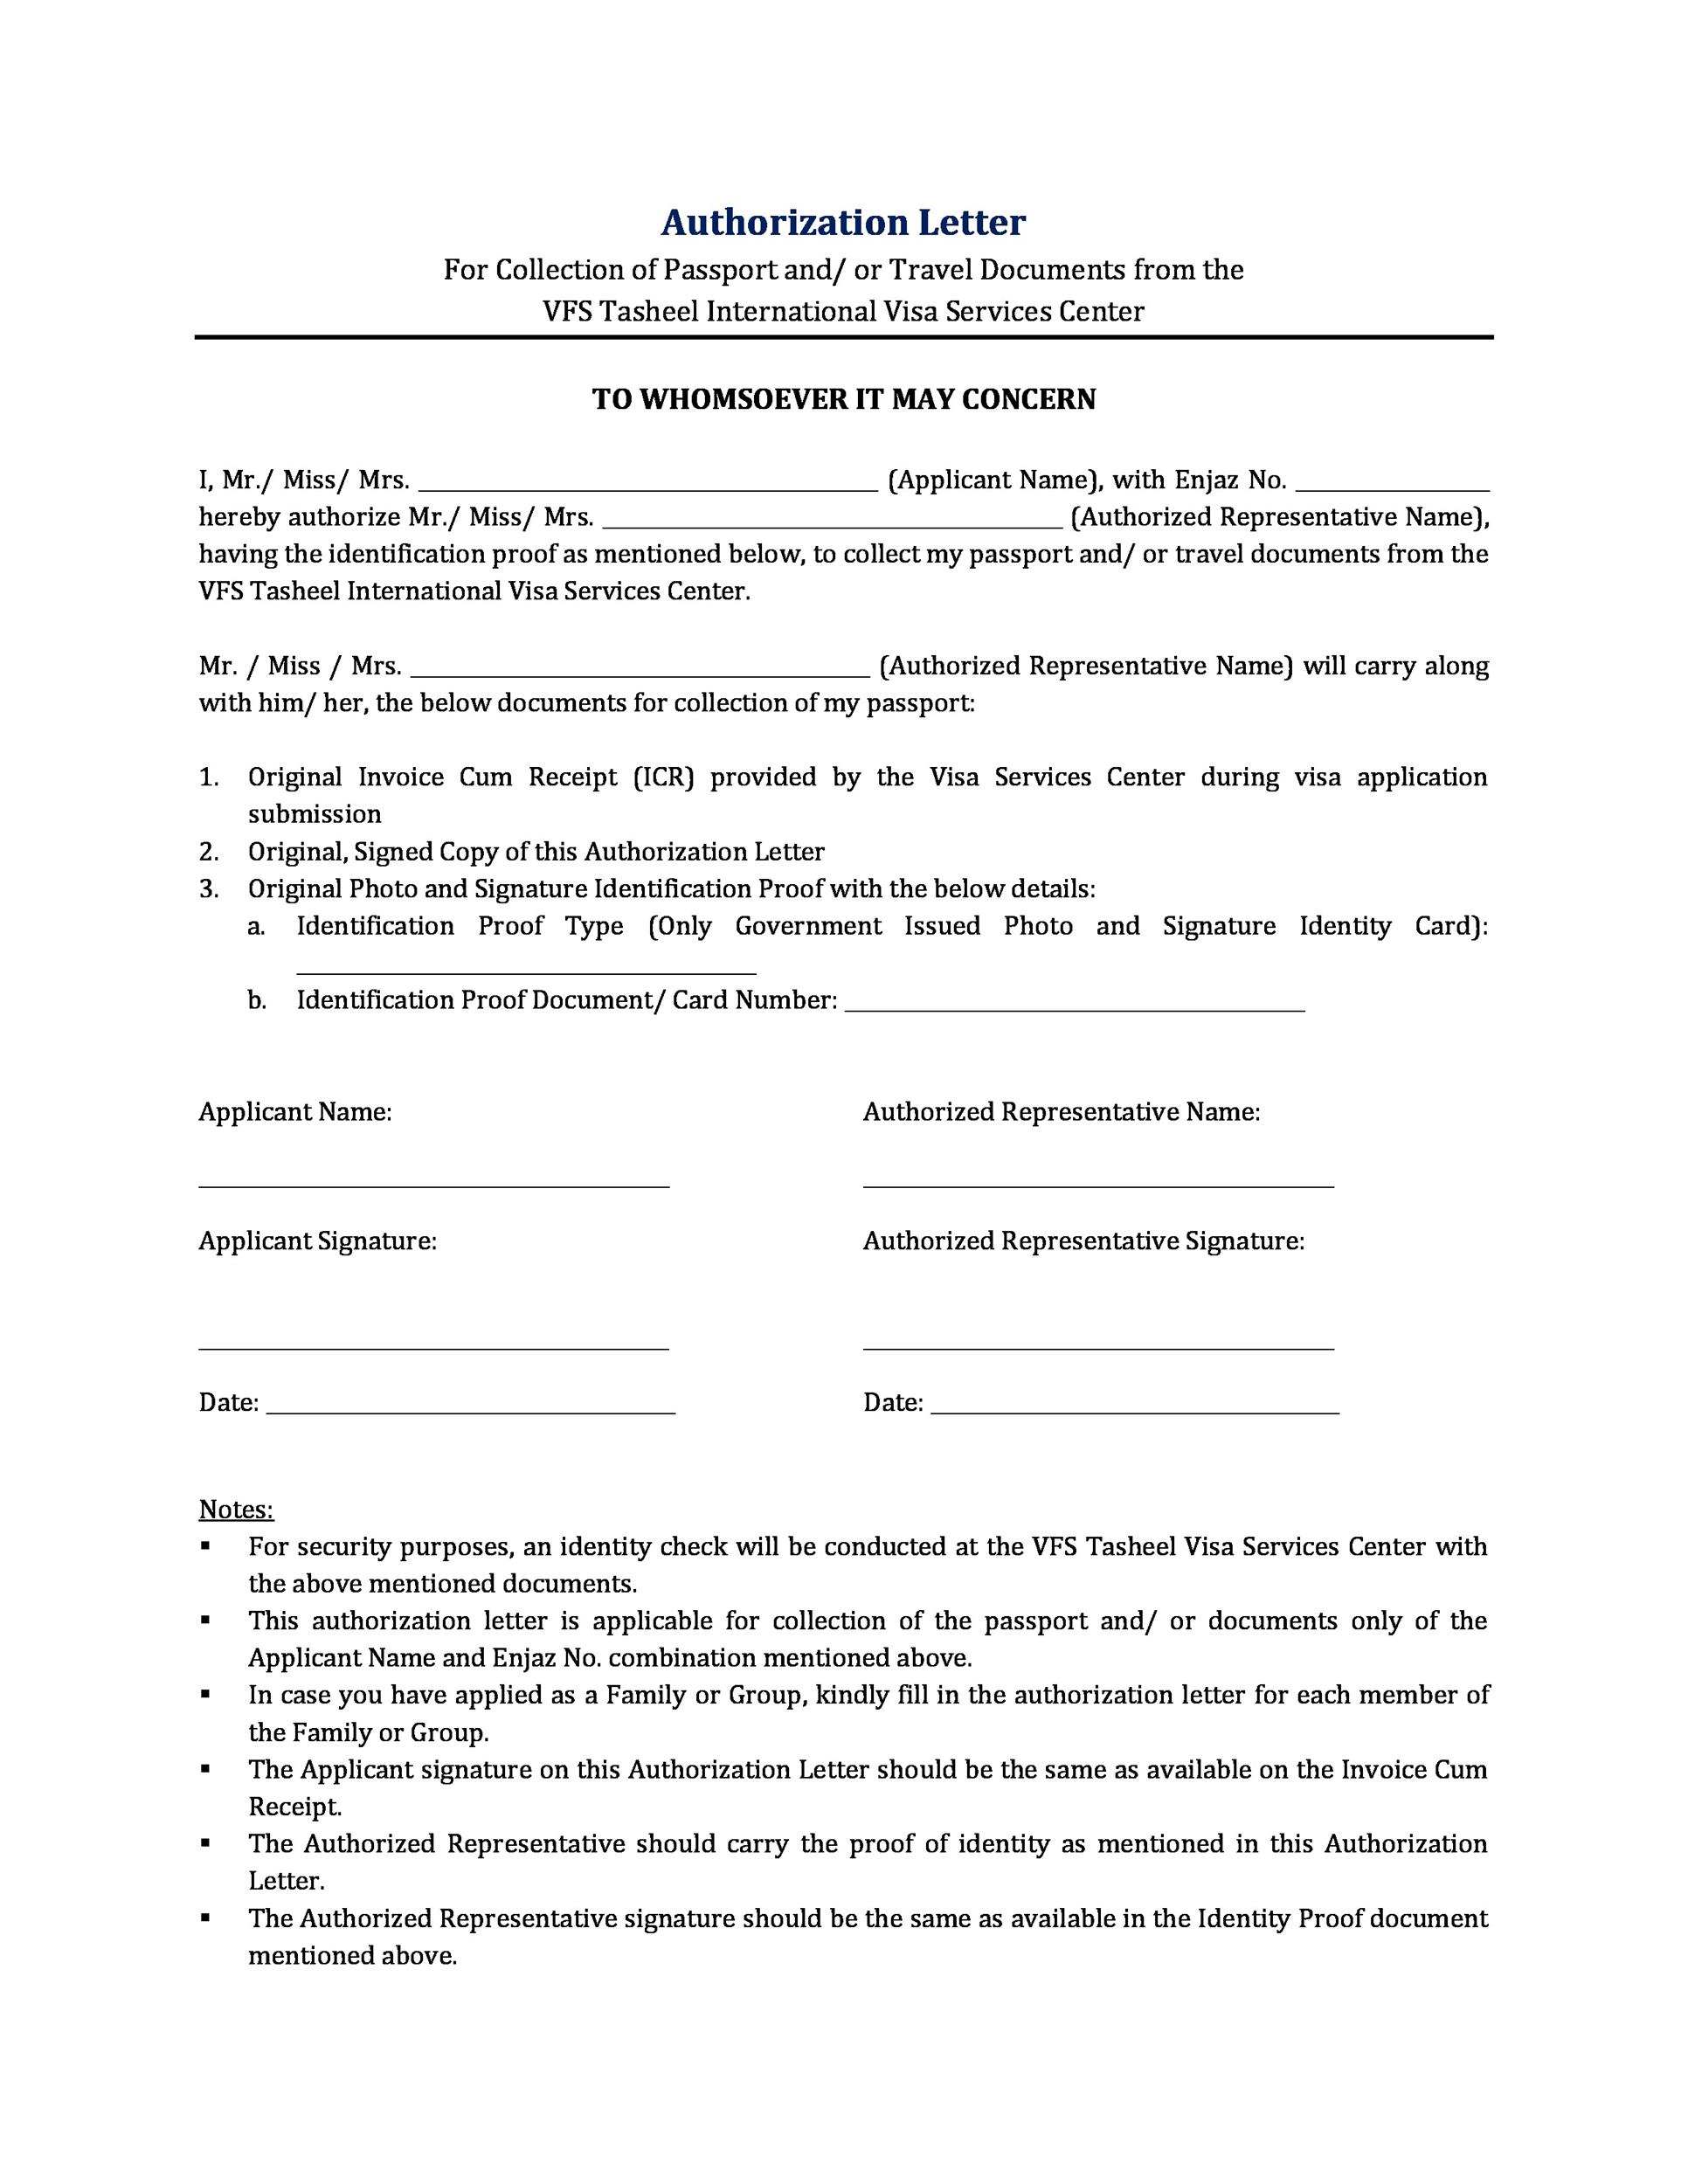 Leave Authorization Form Leave Request Template Sample Leave - leave authorization form